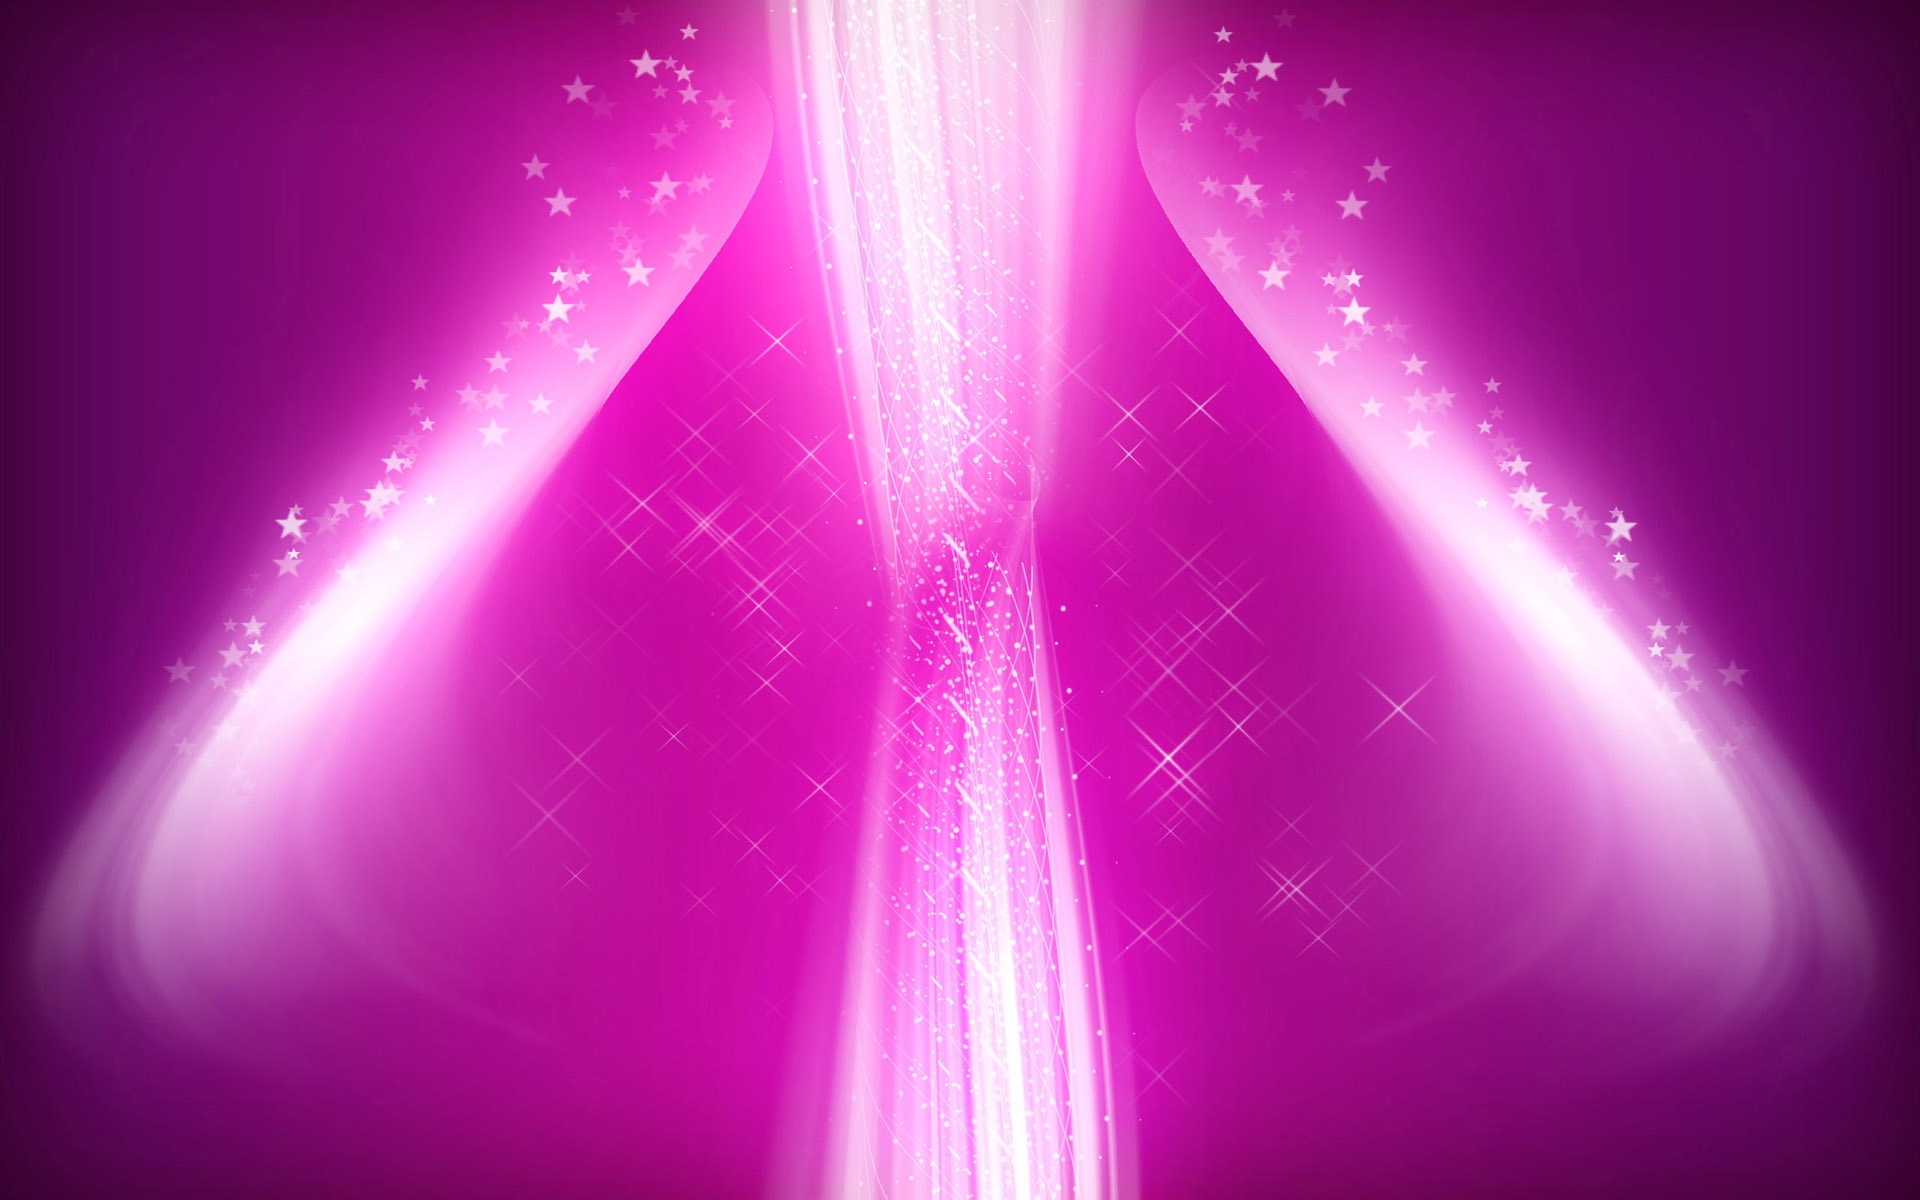 Neon wallpaper   pink glow abstract wide jpg is a great wallpaper for 1920x1200